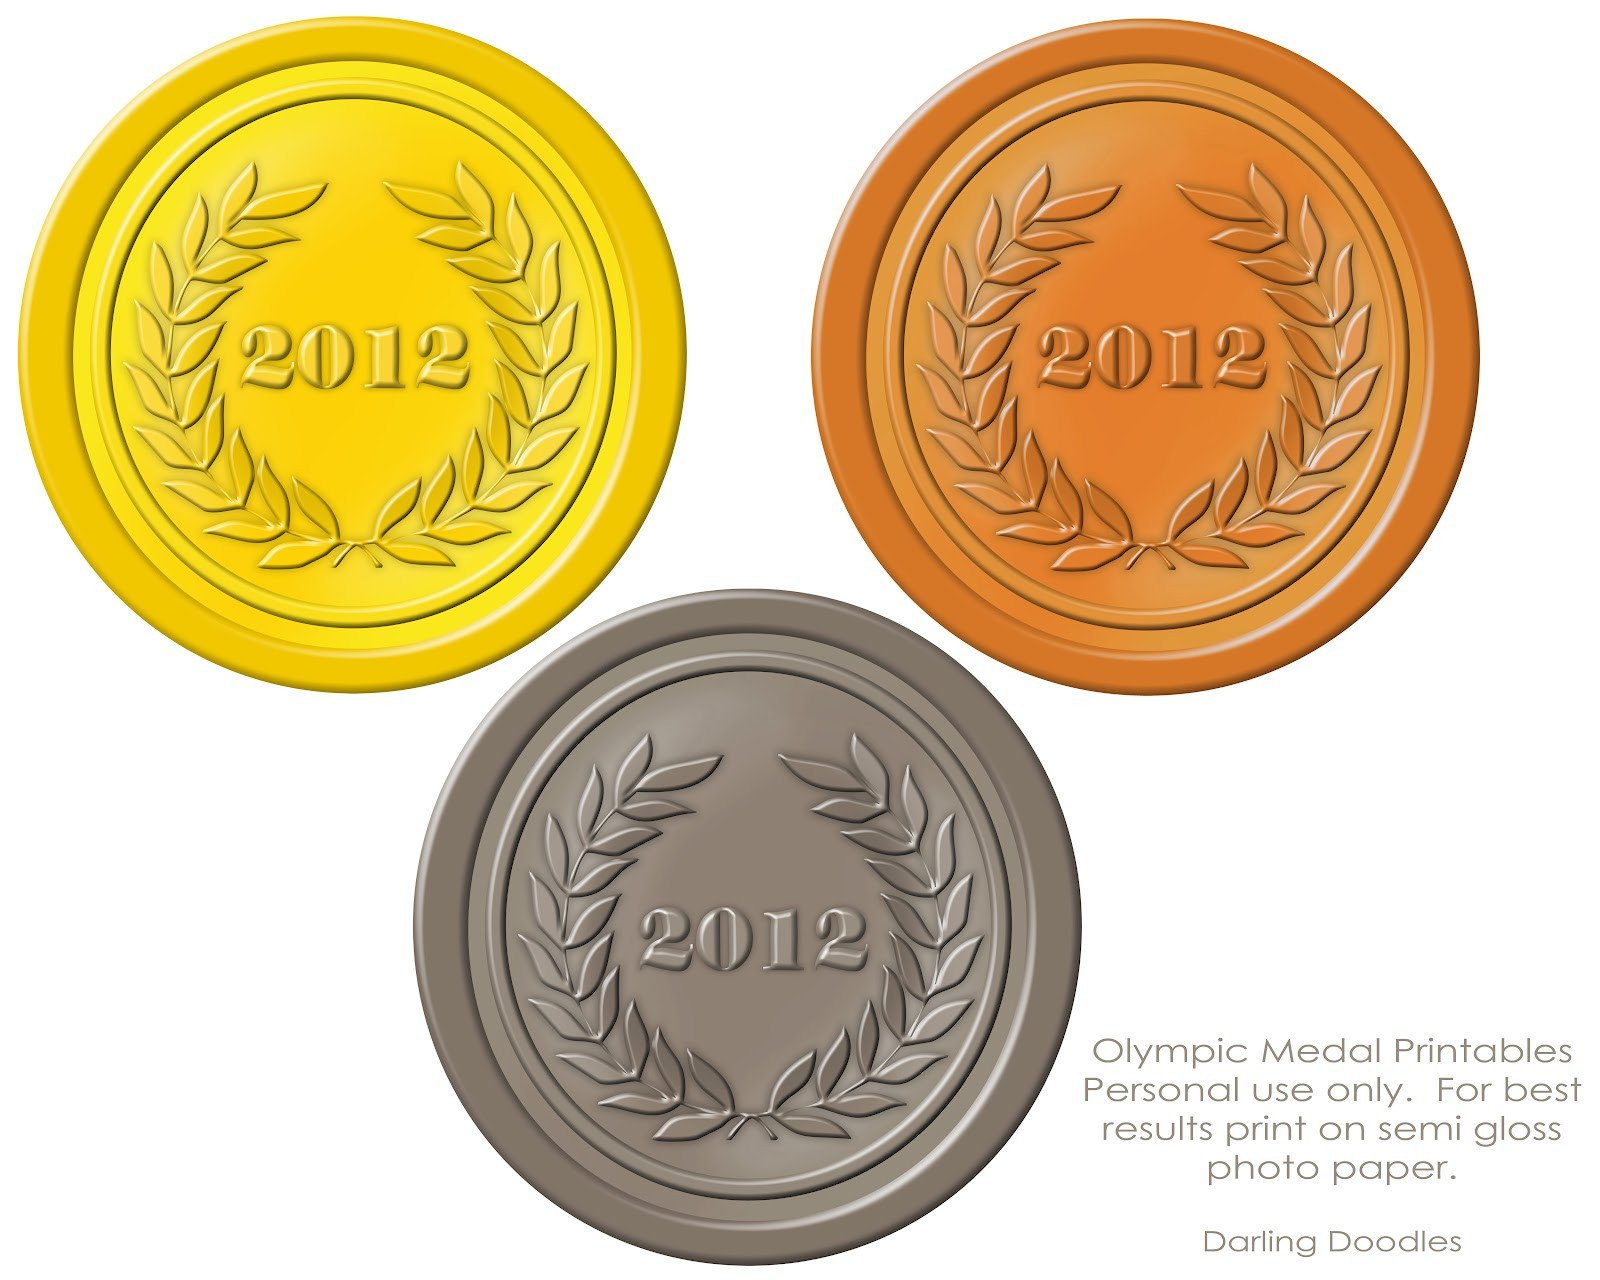 Gold Medal Printable Olympic Printables Darling Doodles